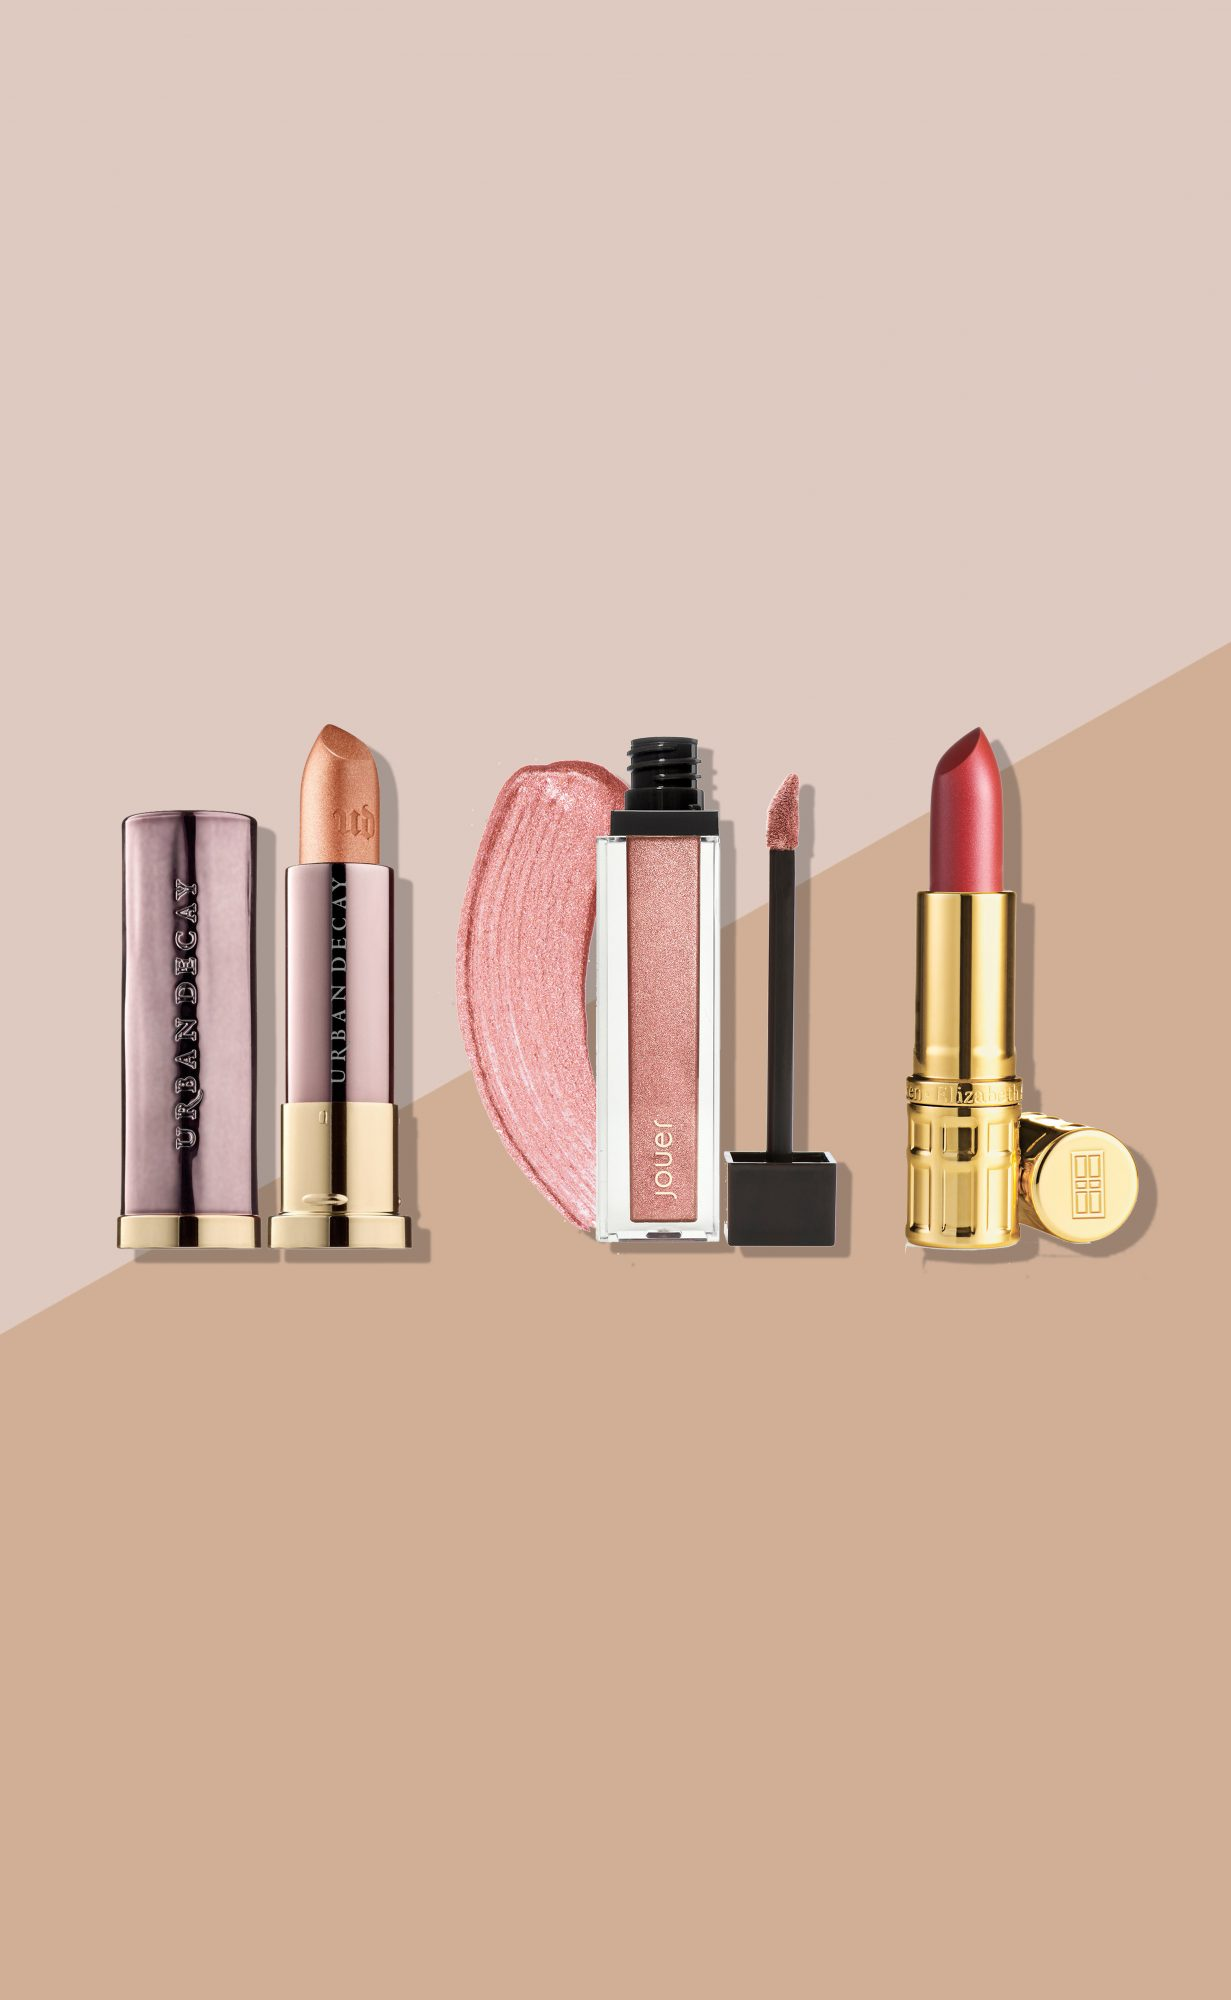 Rose Gold Lipsticks to Try This Holiday Season